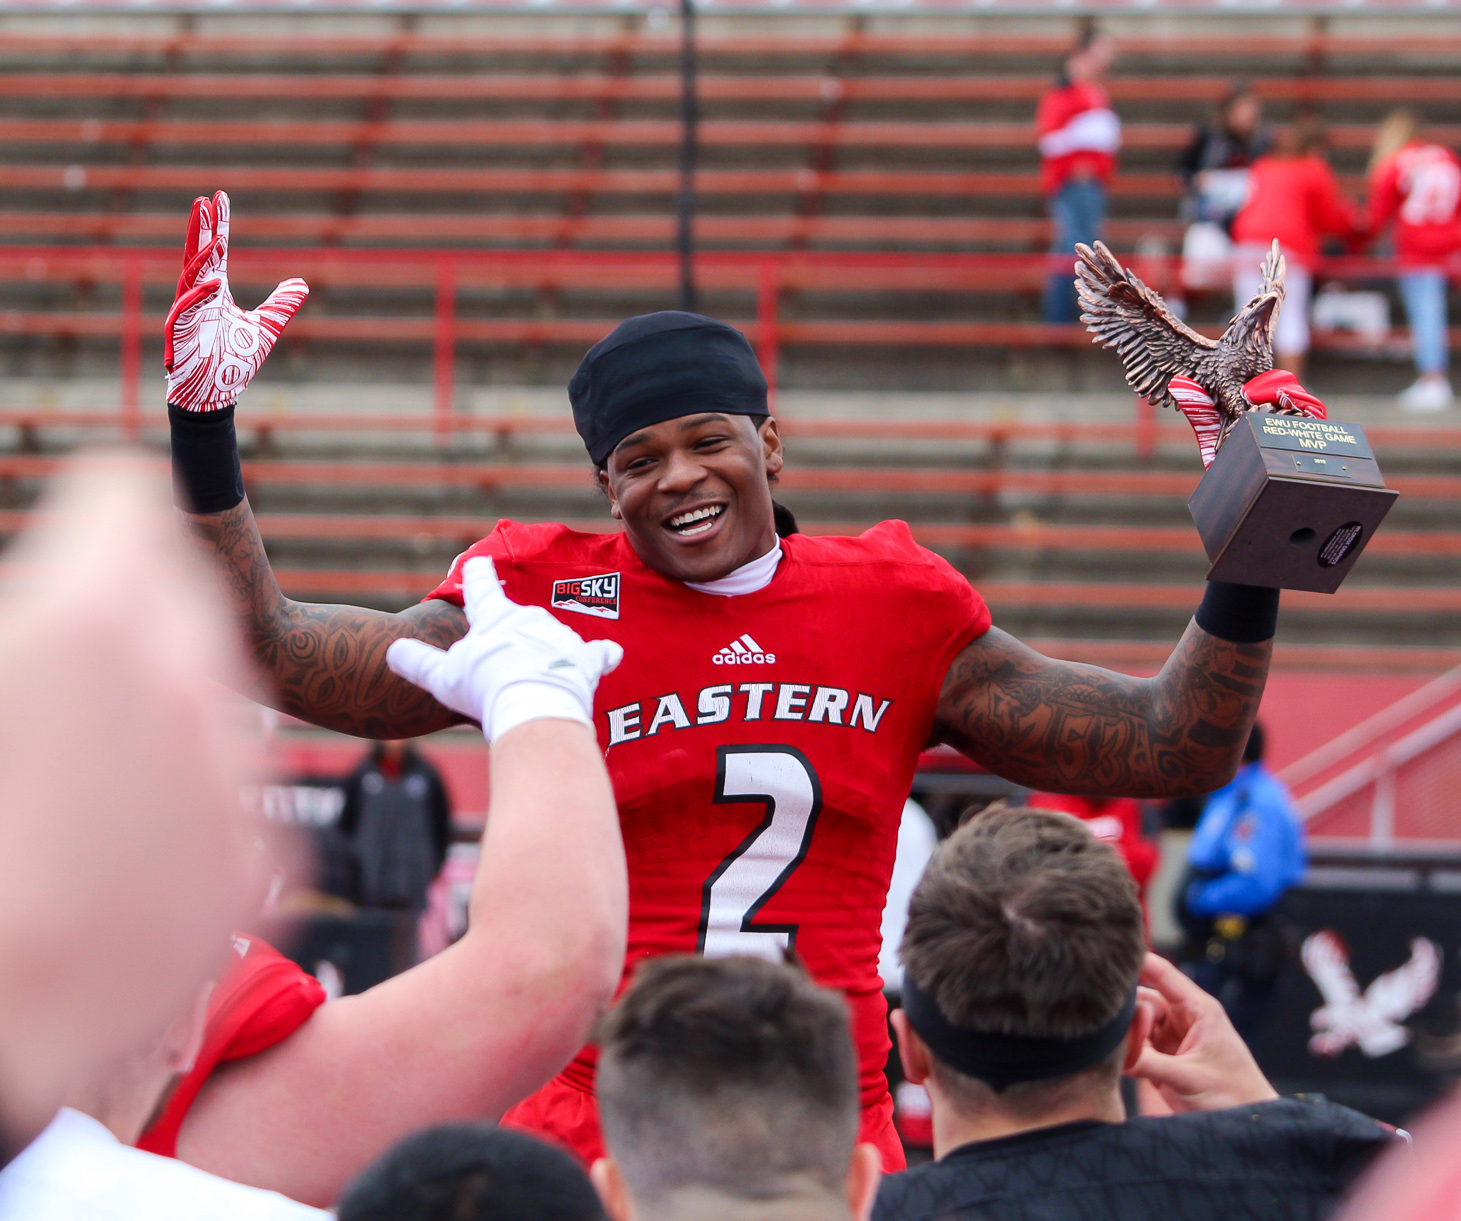 Senior wide receiver Jayson Williams earned the Red-White game's MVP award after catching four passes for 67 yards and two touchdowns.